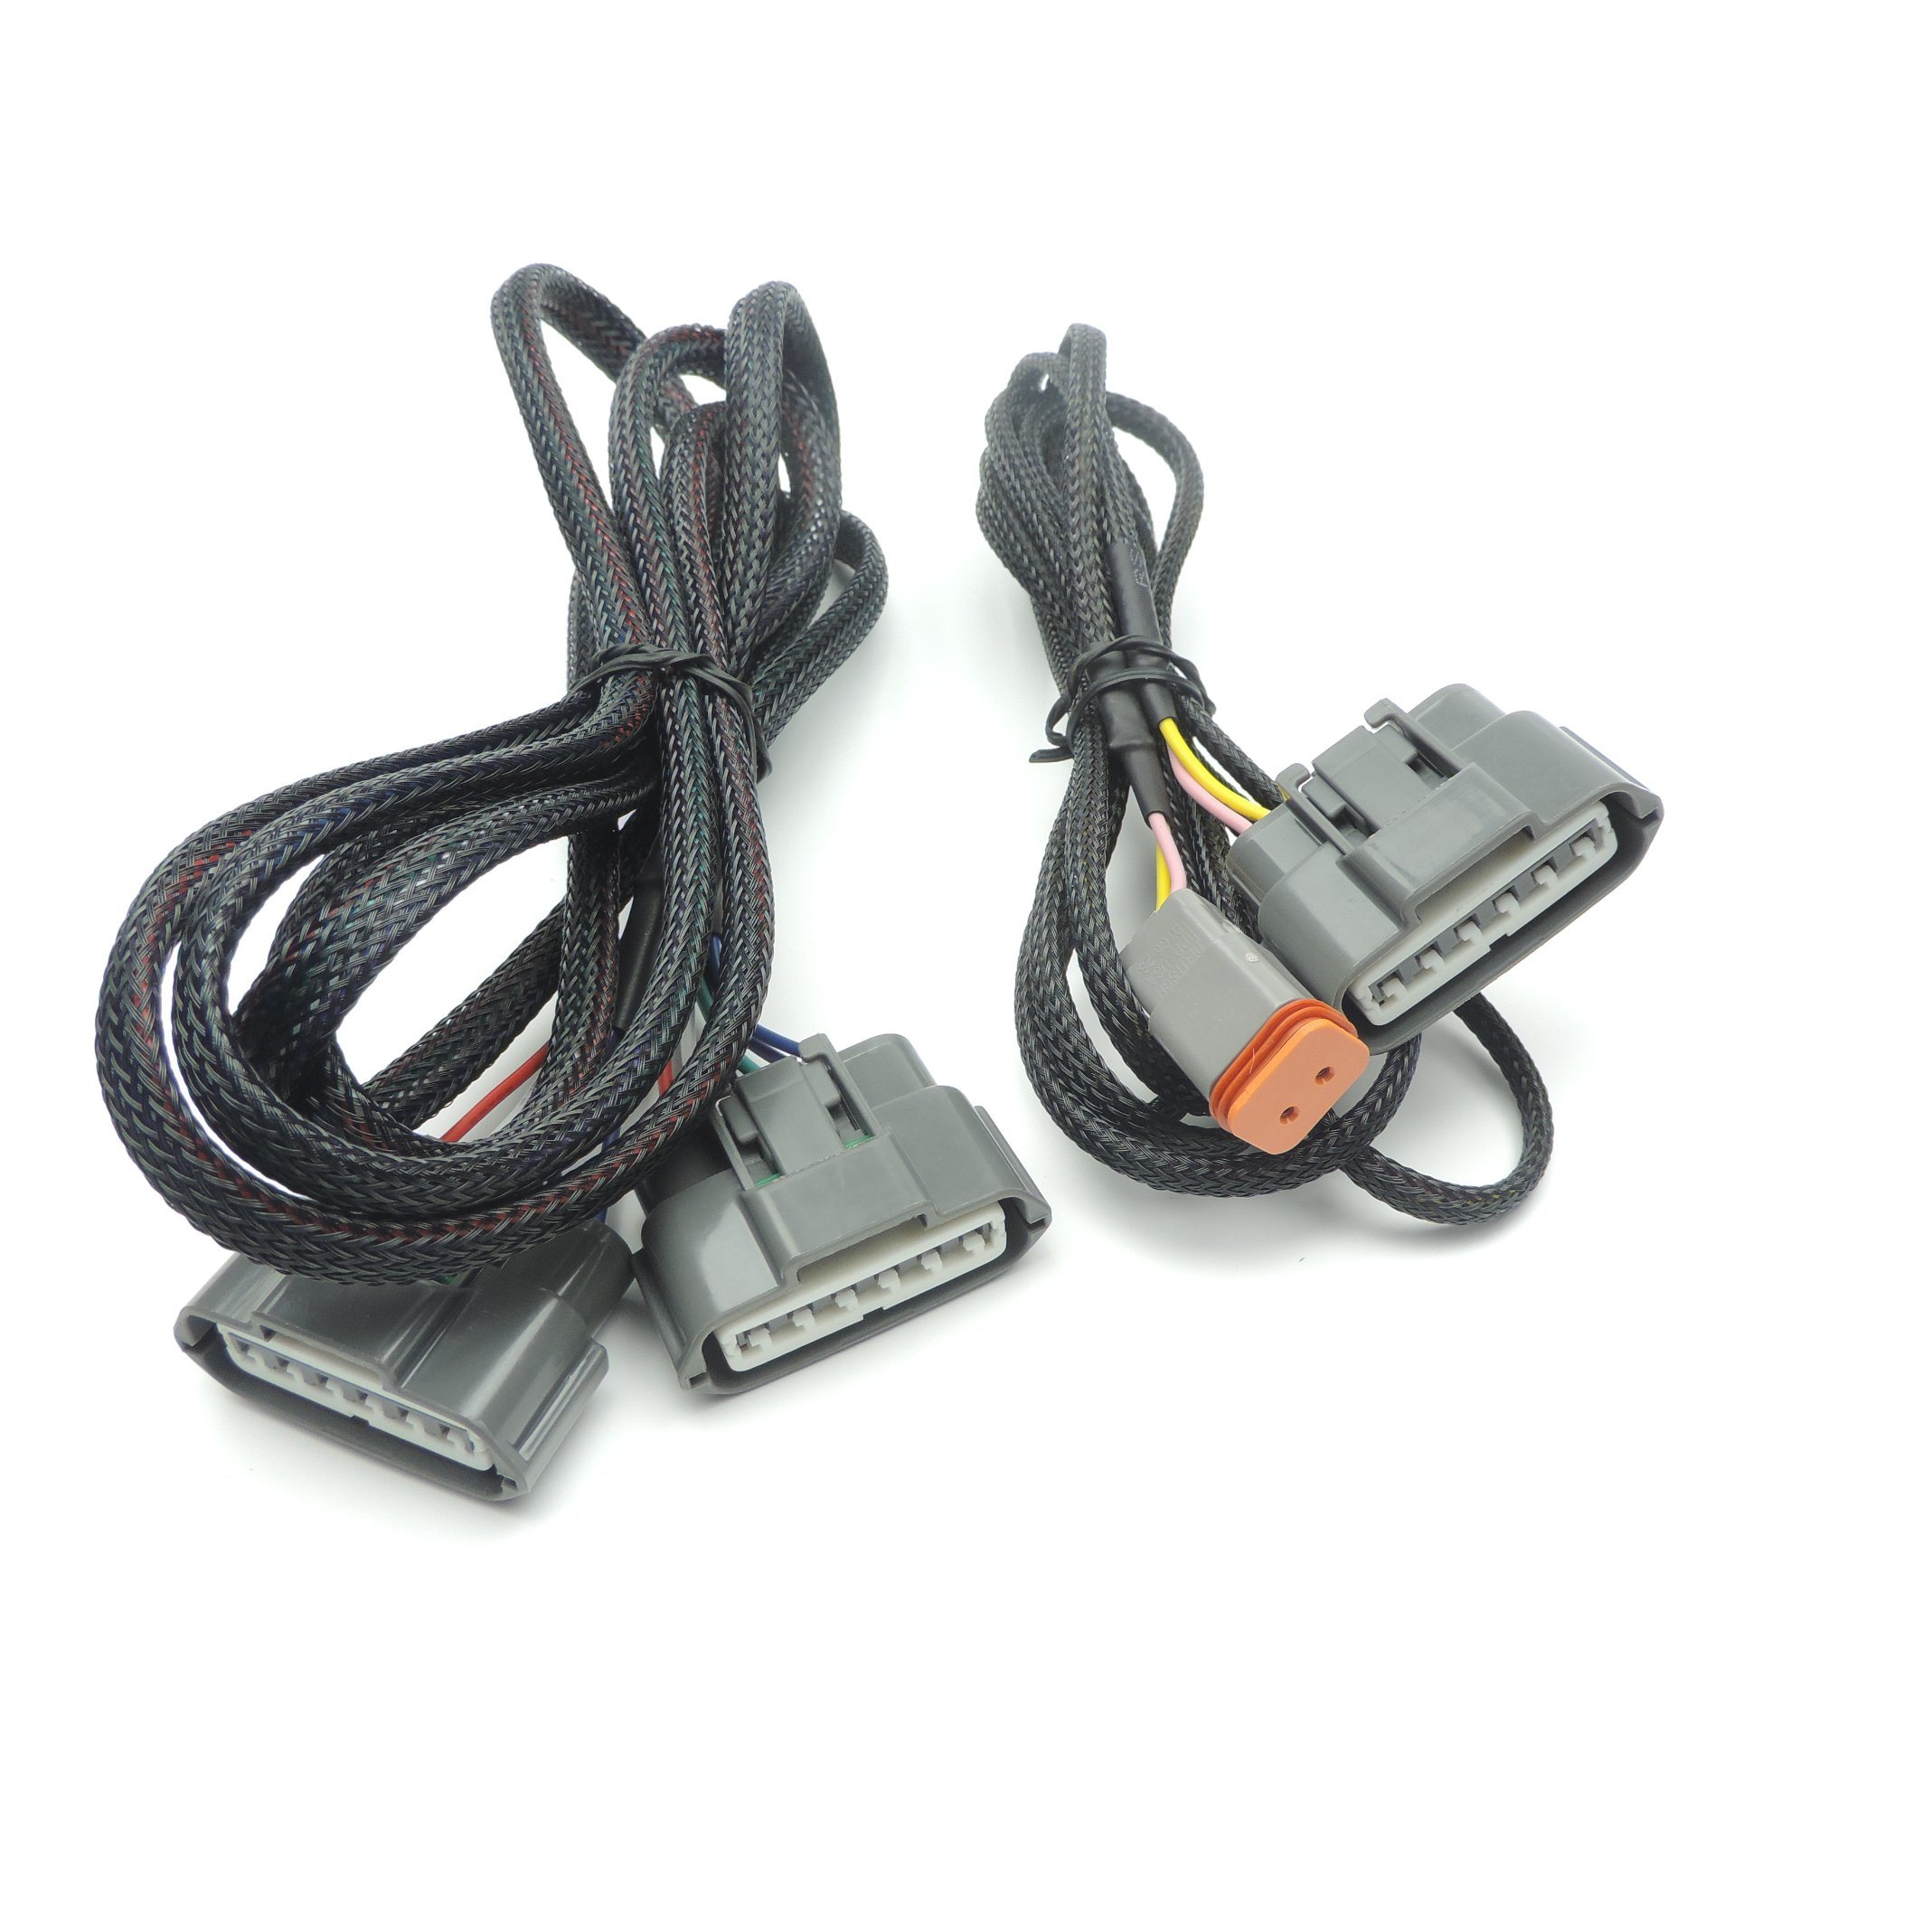 China Custom Wire Harness with Braidd Tube for Dodge Challenger Car - China  Customization Wire Harness with Braidd Tube, Air Conditioning Control  System Wire HarnessSuzhou Bulovb Electronic Co., Ltd.